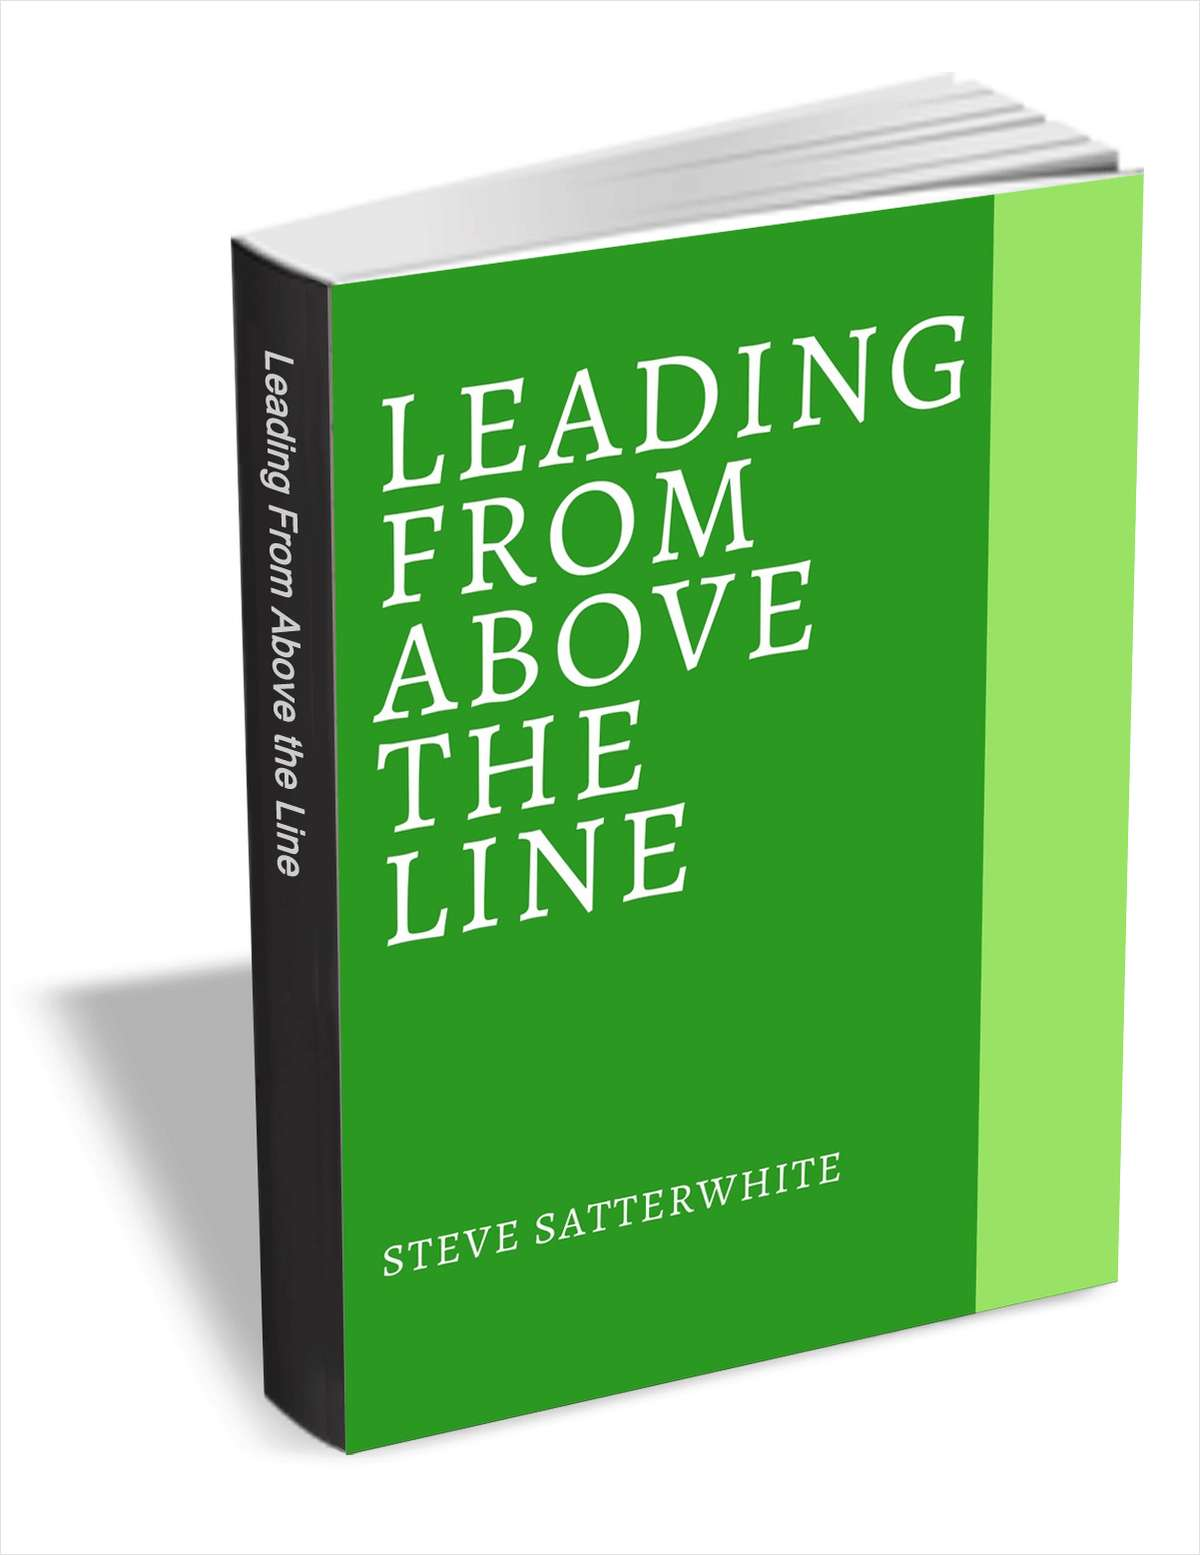 Leading from Above the Line